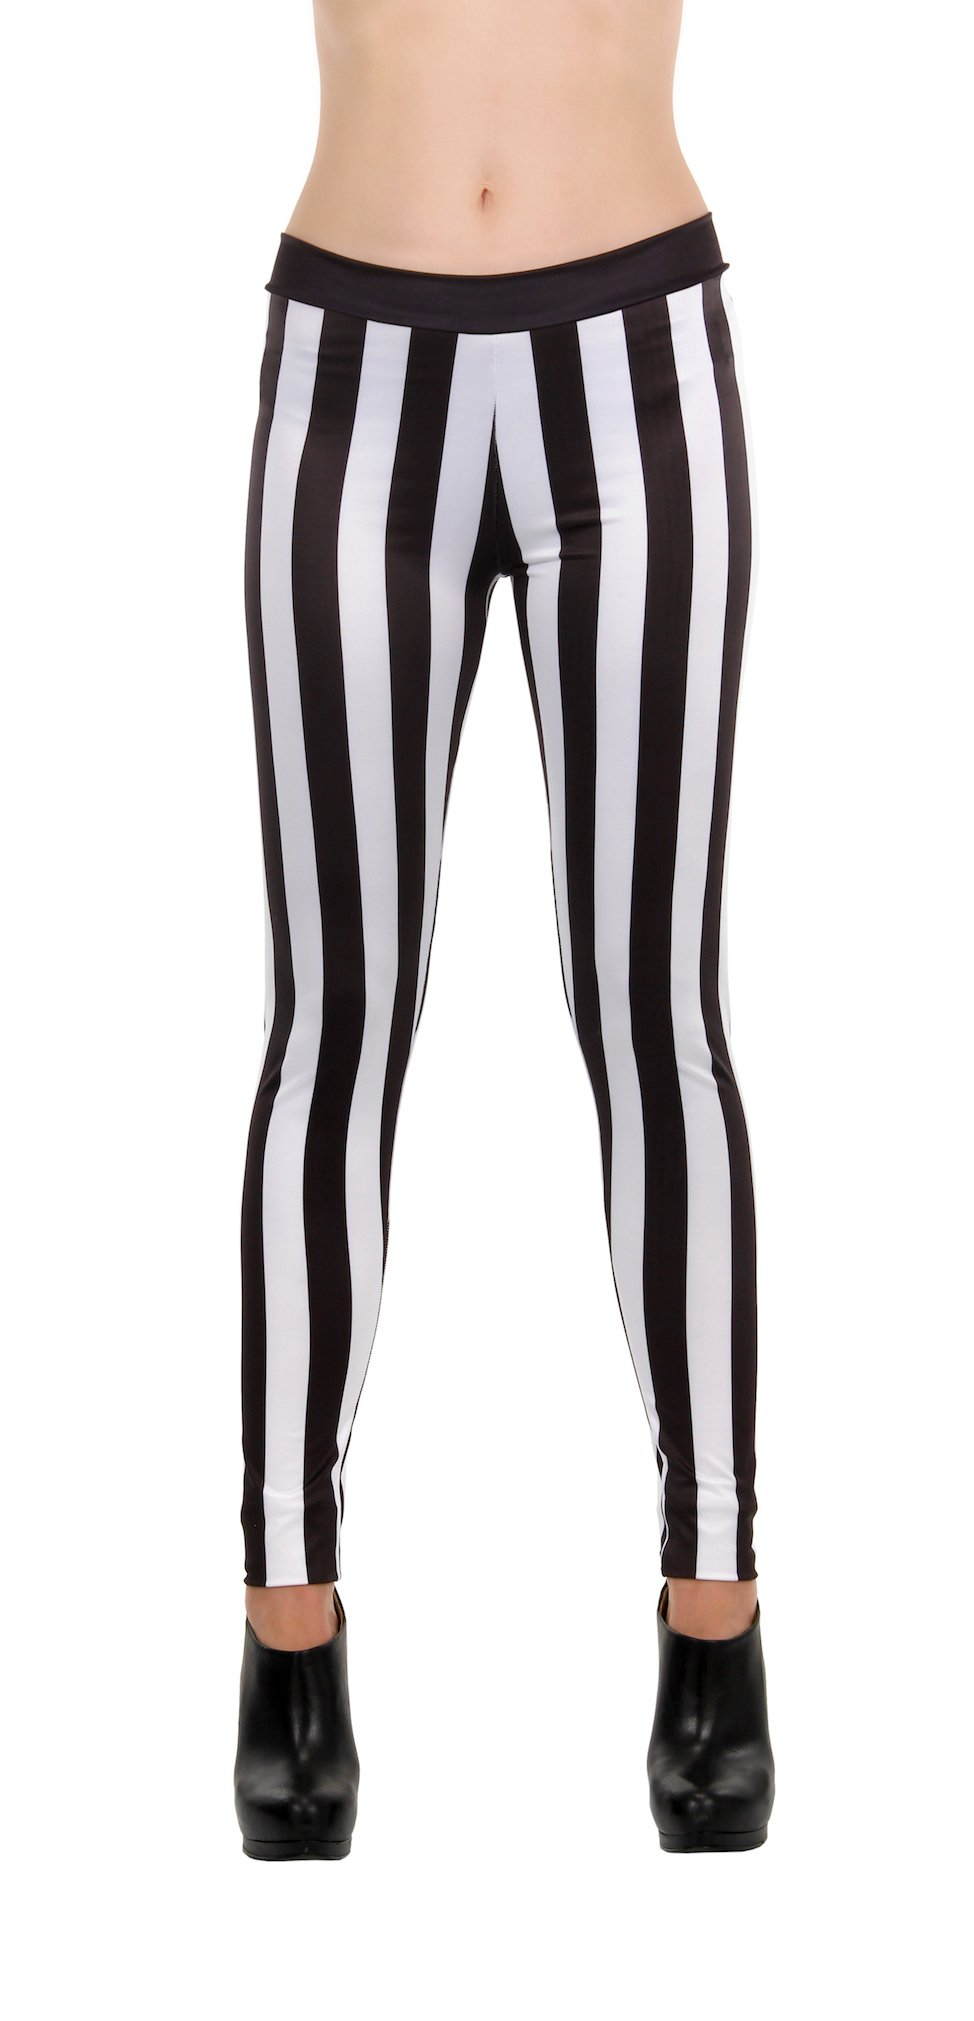 92b8e8f86916d Cheap Striped Black And White Leggings, find Striped Black And White ...